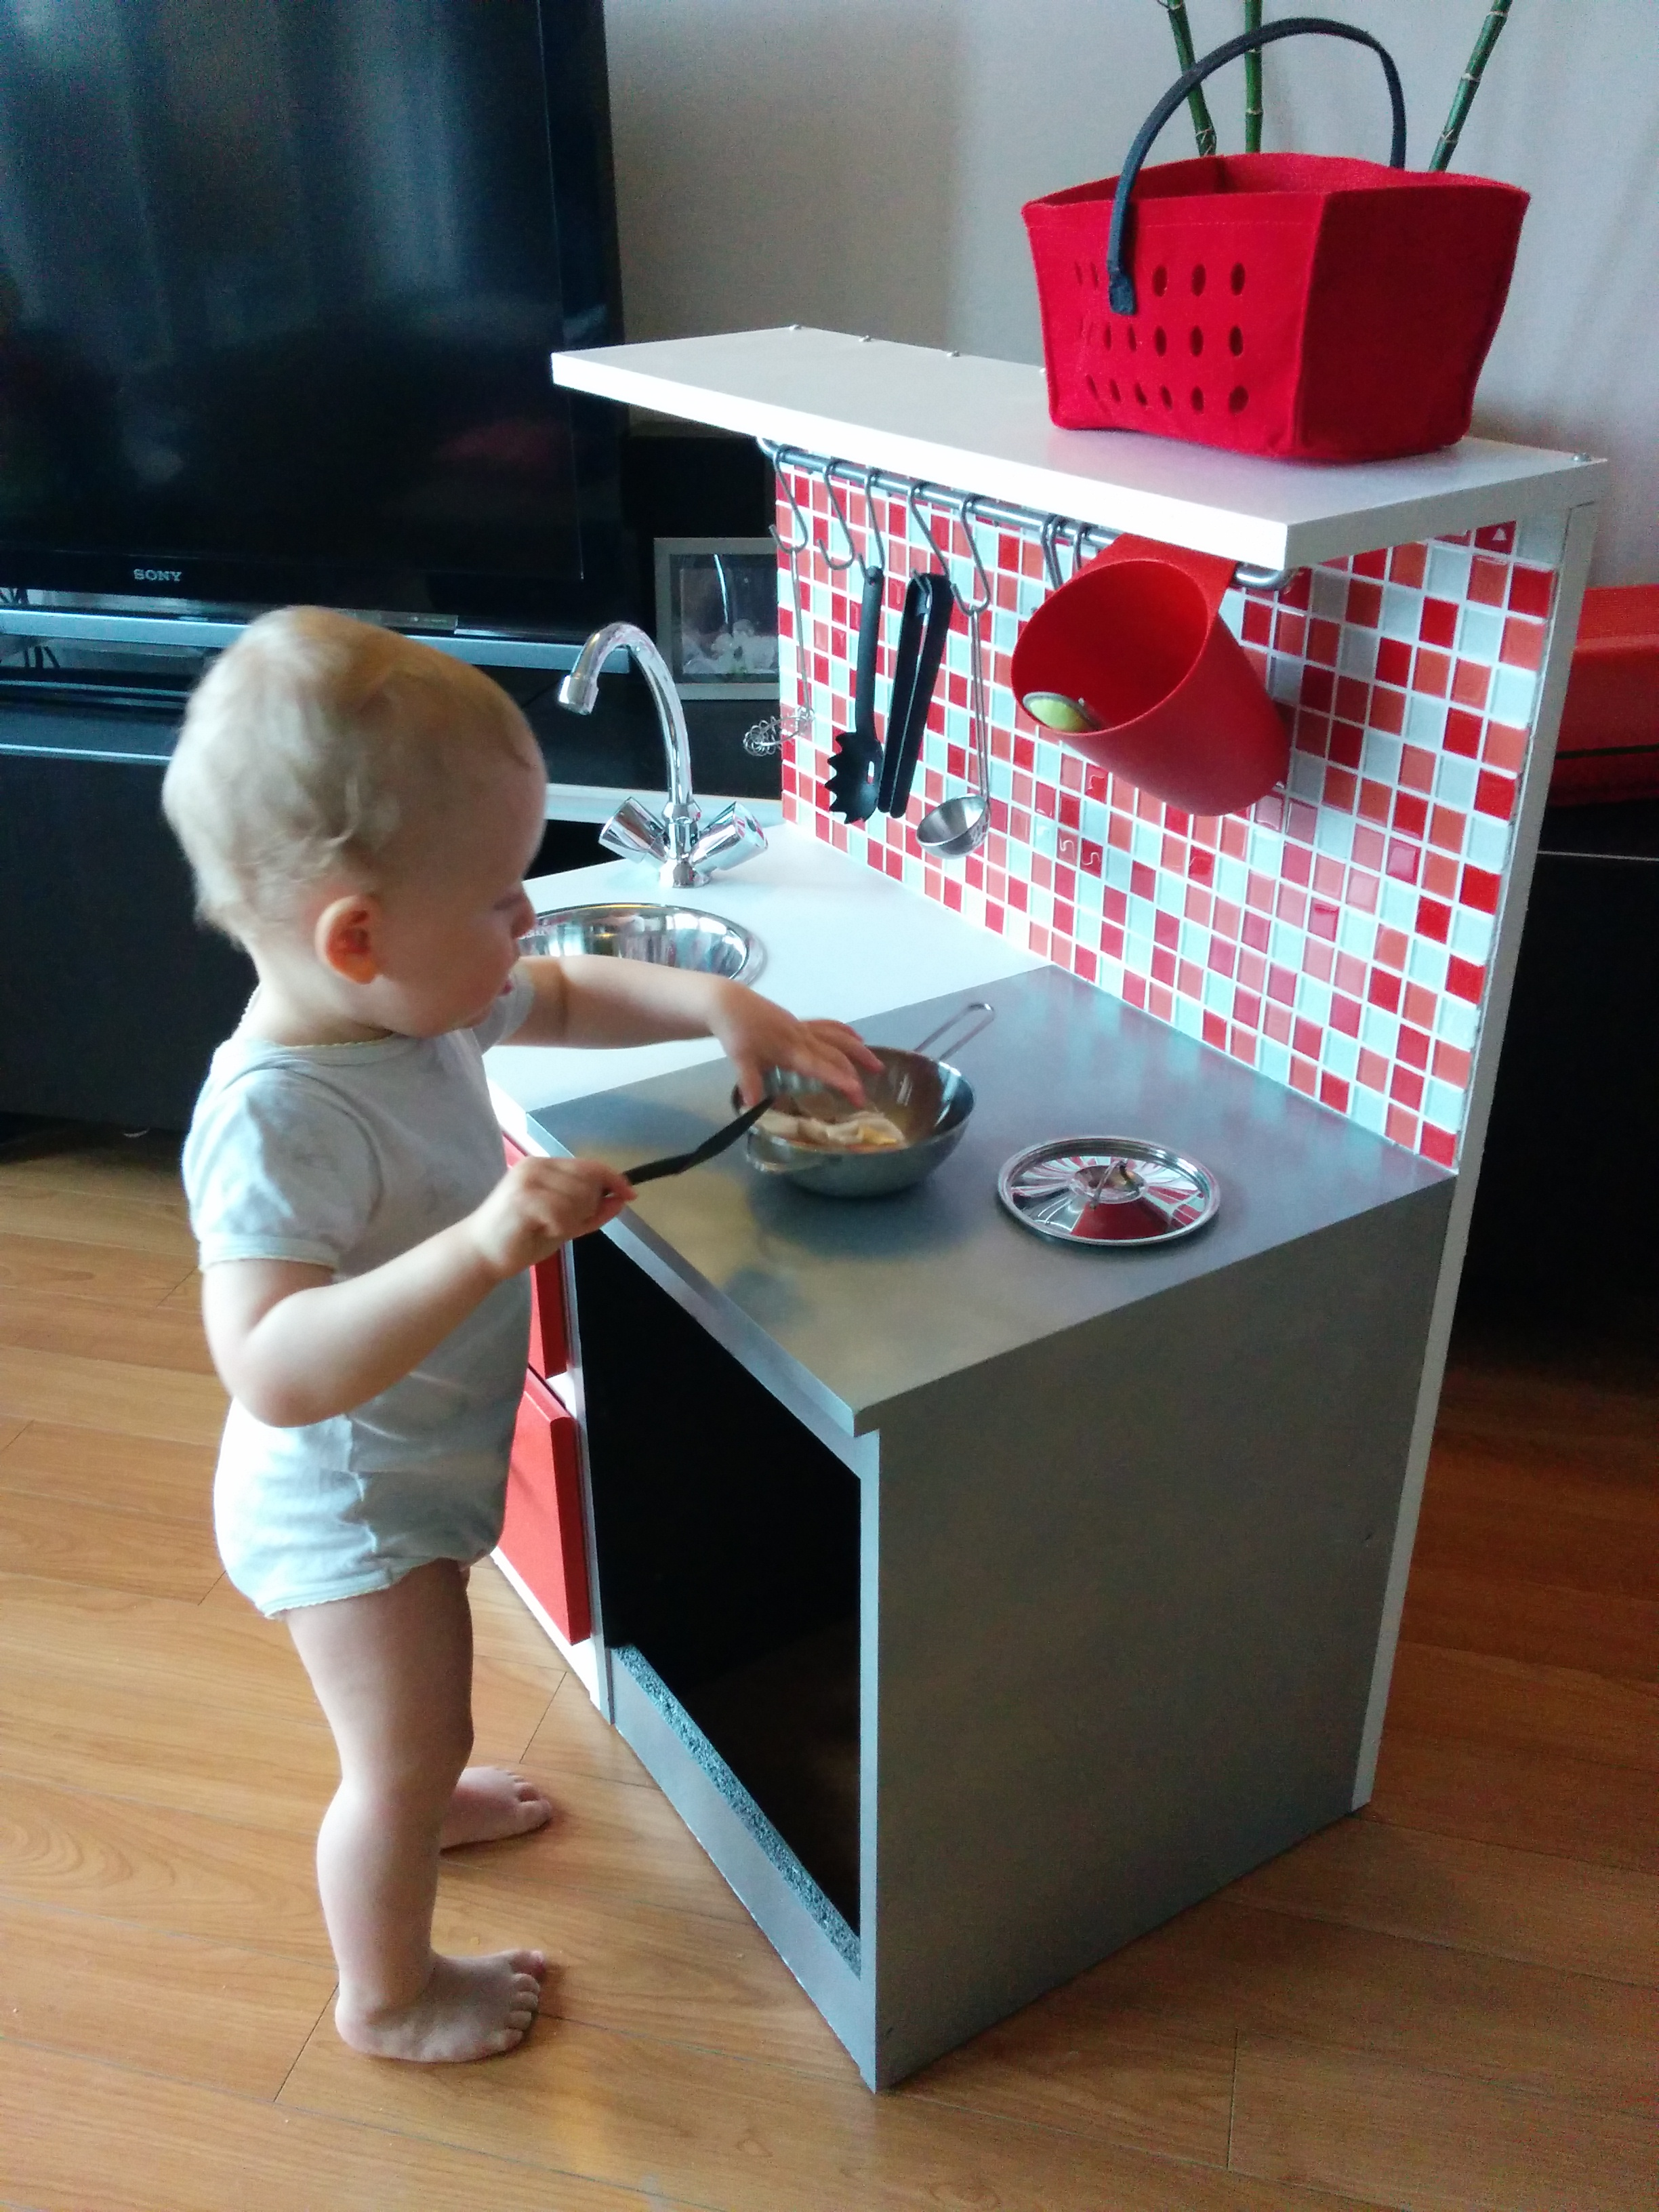 diy construire une cuisine pour enfant sur une base ik a. Black Bedroom Furniture Sets. Home Design Ideas